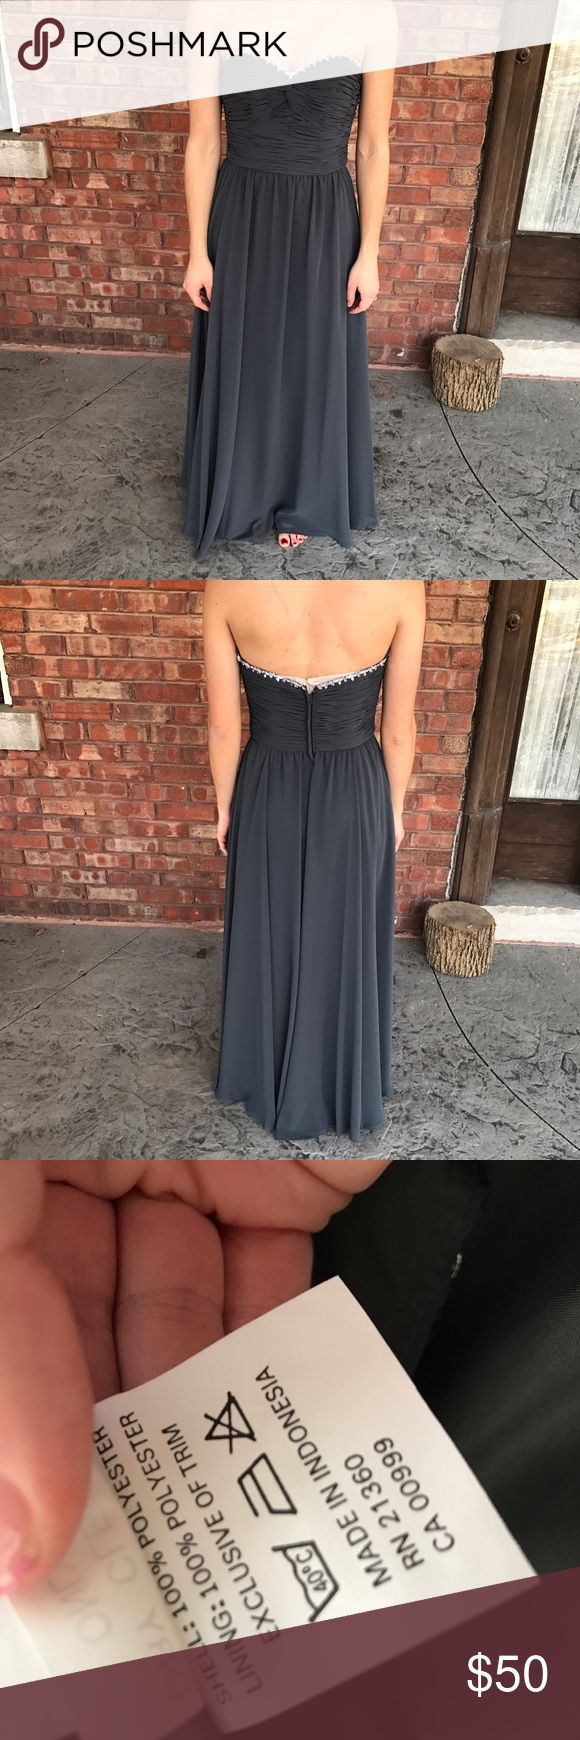 Charcoal Gray Floor Length Bridesmaid Gown Mori Lee by Madeline Gardner bridesmaid's gown or special occasion dress. Worn once in a wedding. Sweetheart neckline with rhinestones across the top. Ruched in the front. Floor length. Mori Lee Dresses Strapless